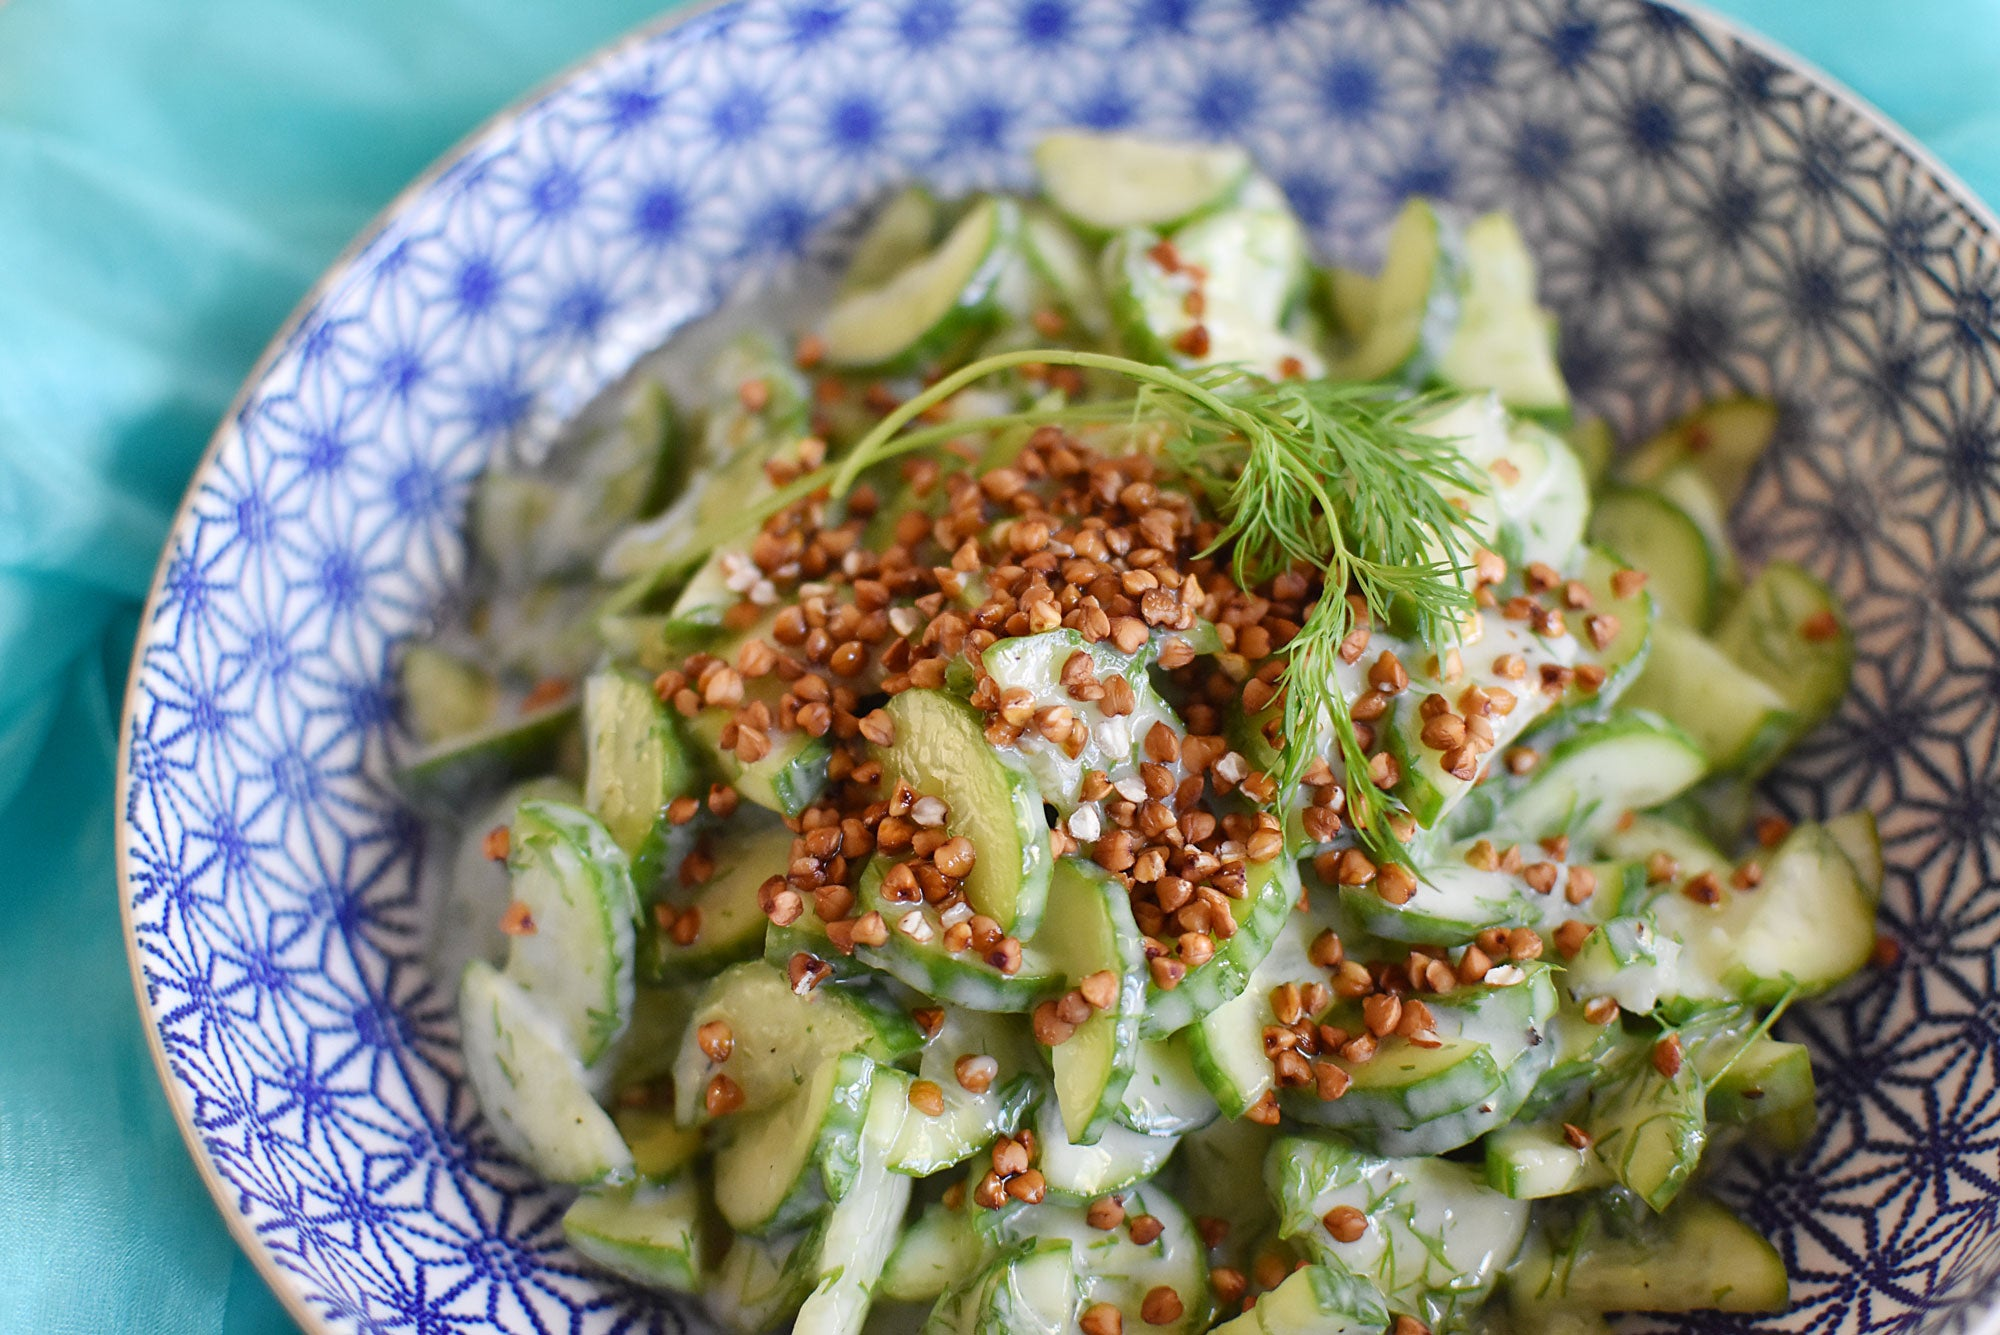 Cucumber Dill Salad with Crunchy Buckwheat Groats